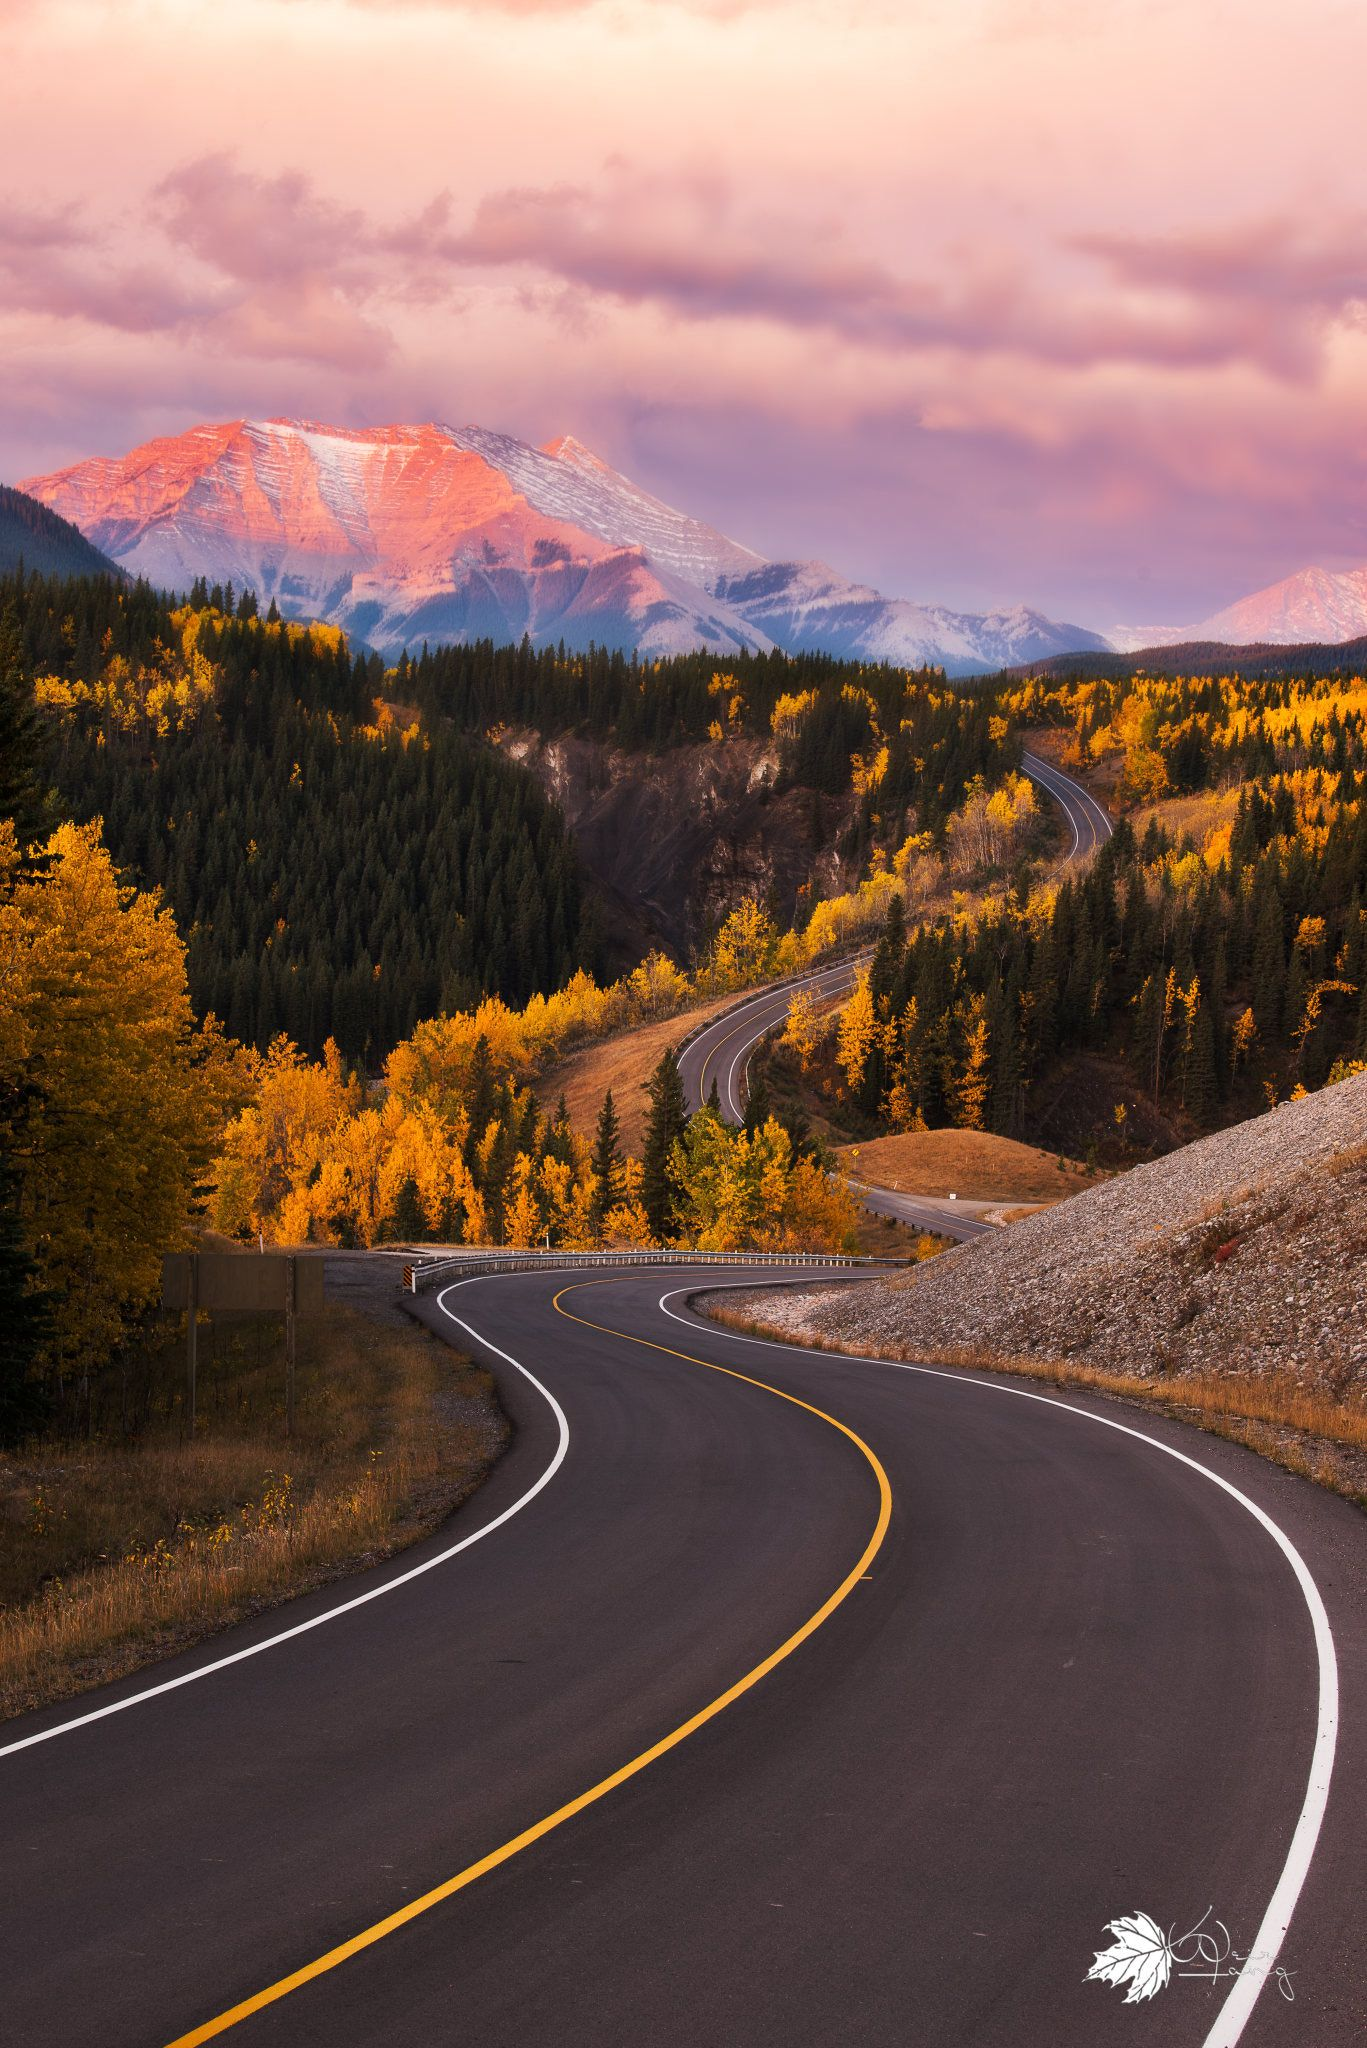 曲径通幽 Beautiful Roads Scenery Nature Pictures